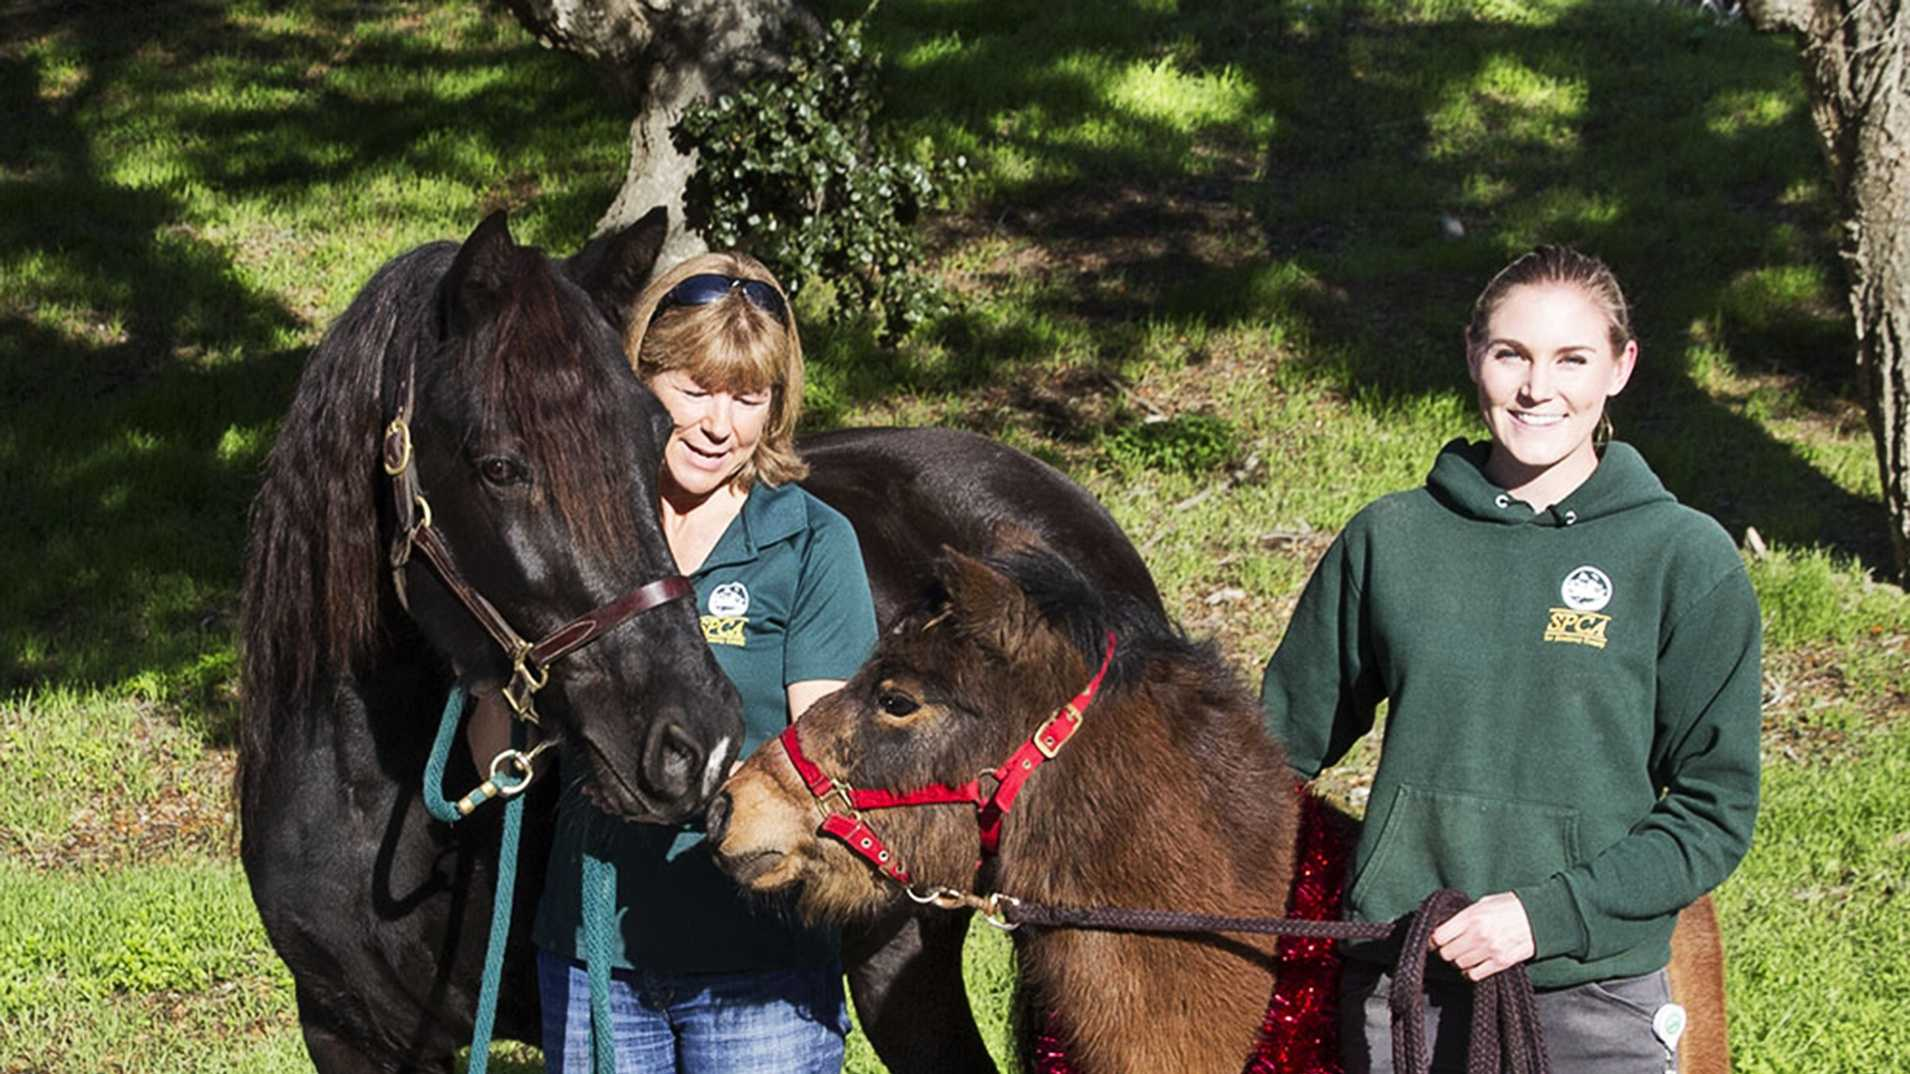 Bradley, a 7-year-old pony, and Bella Donna, a warmblood mare, are among the seven horses ready for new homes.